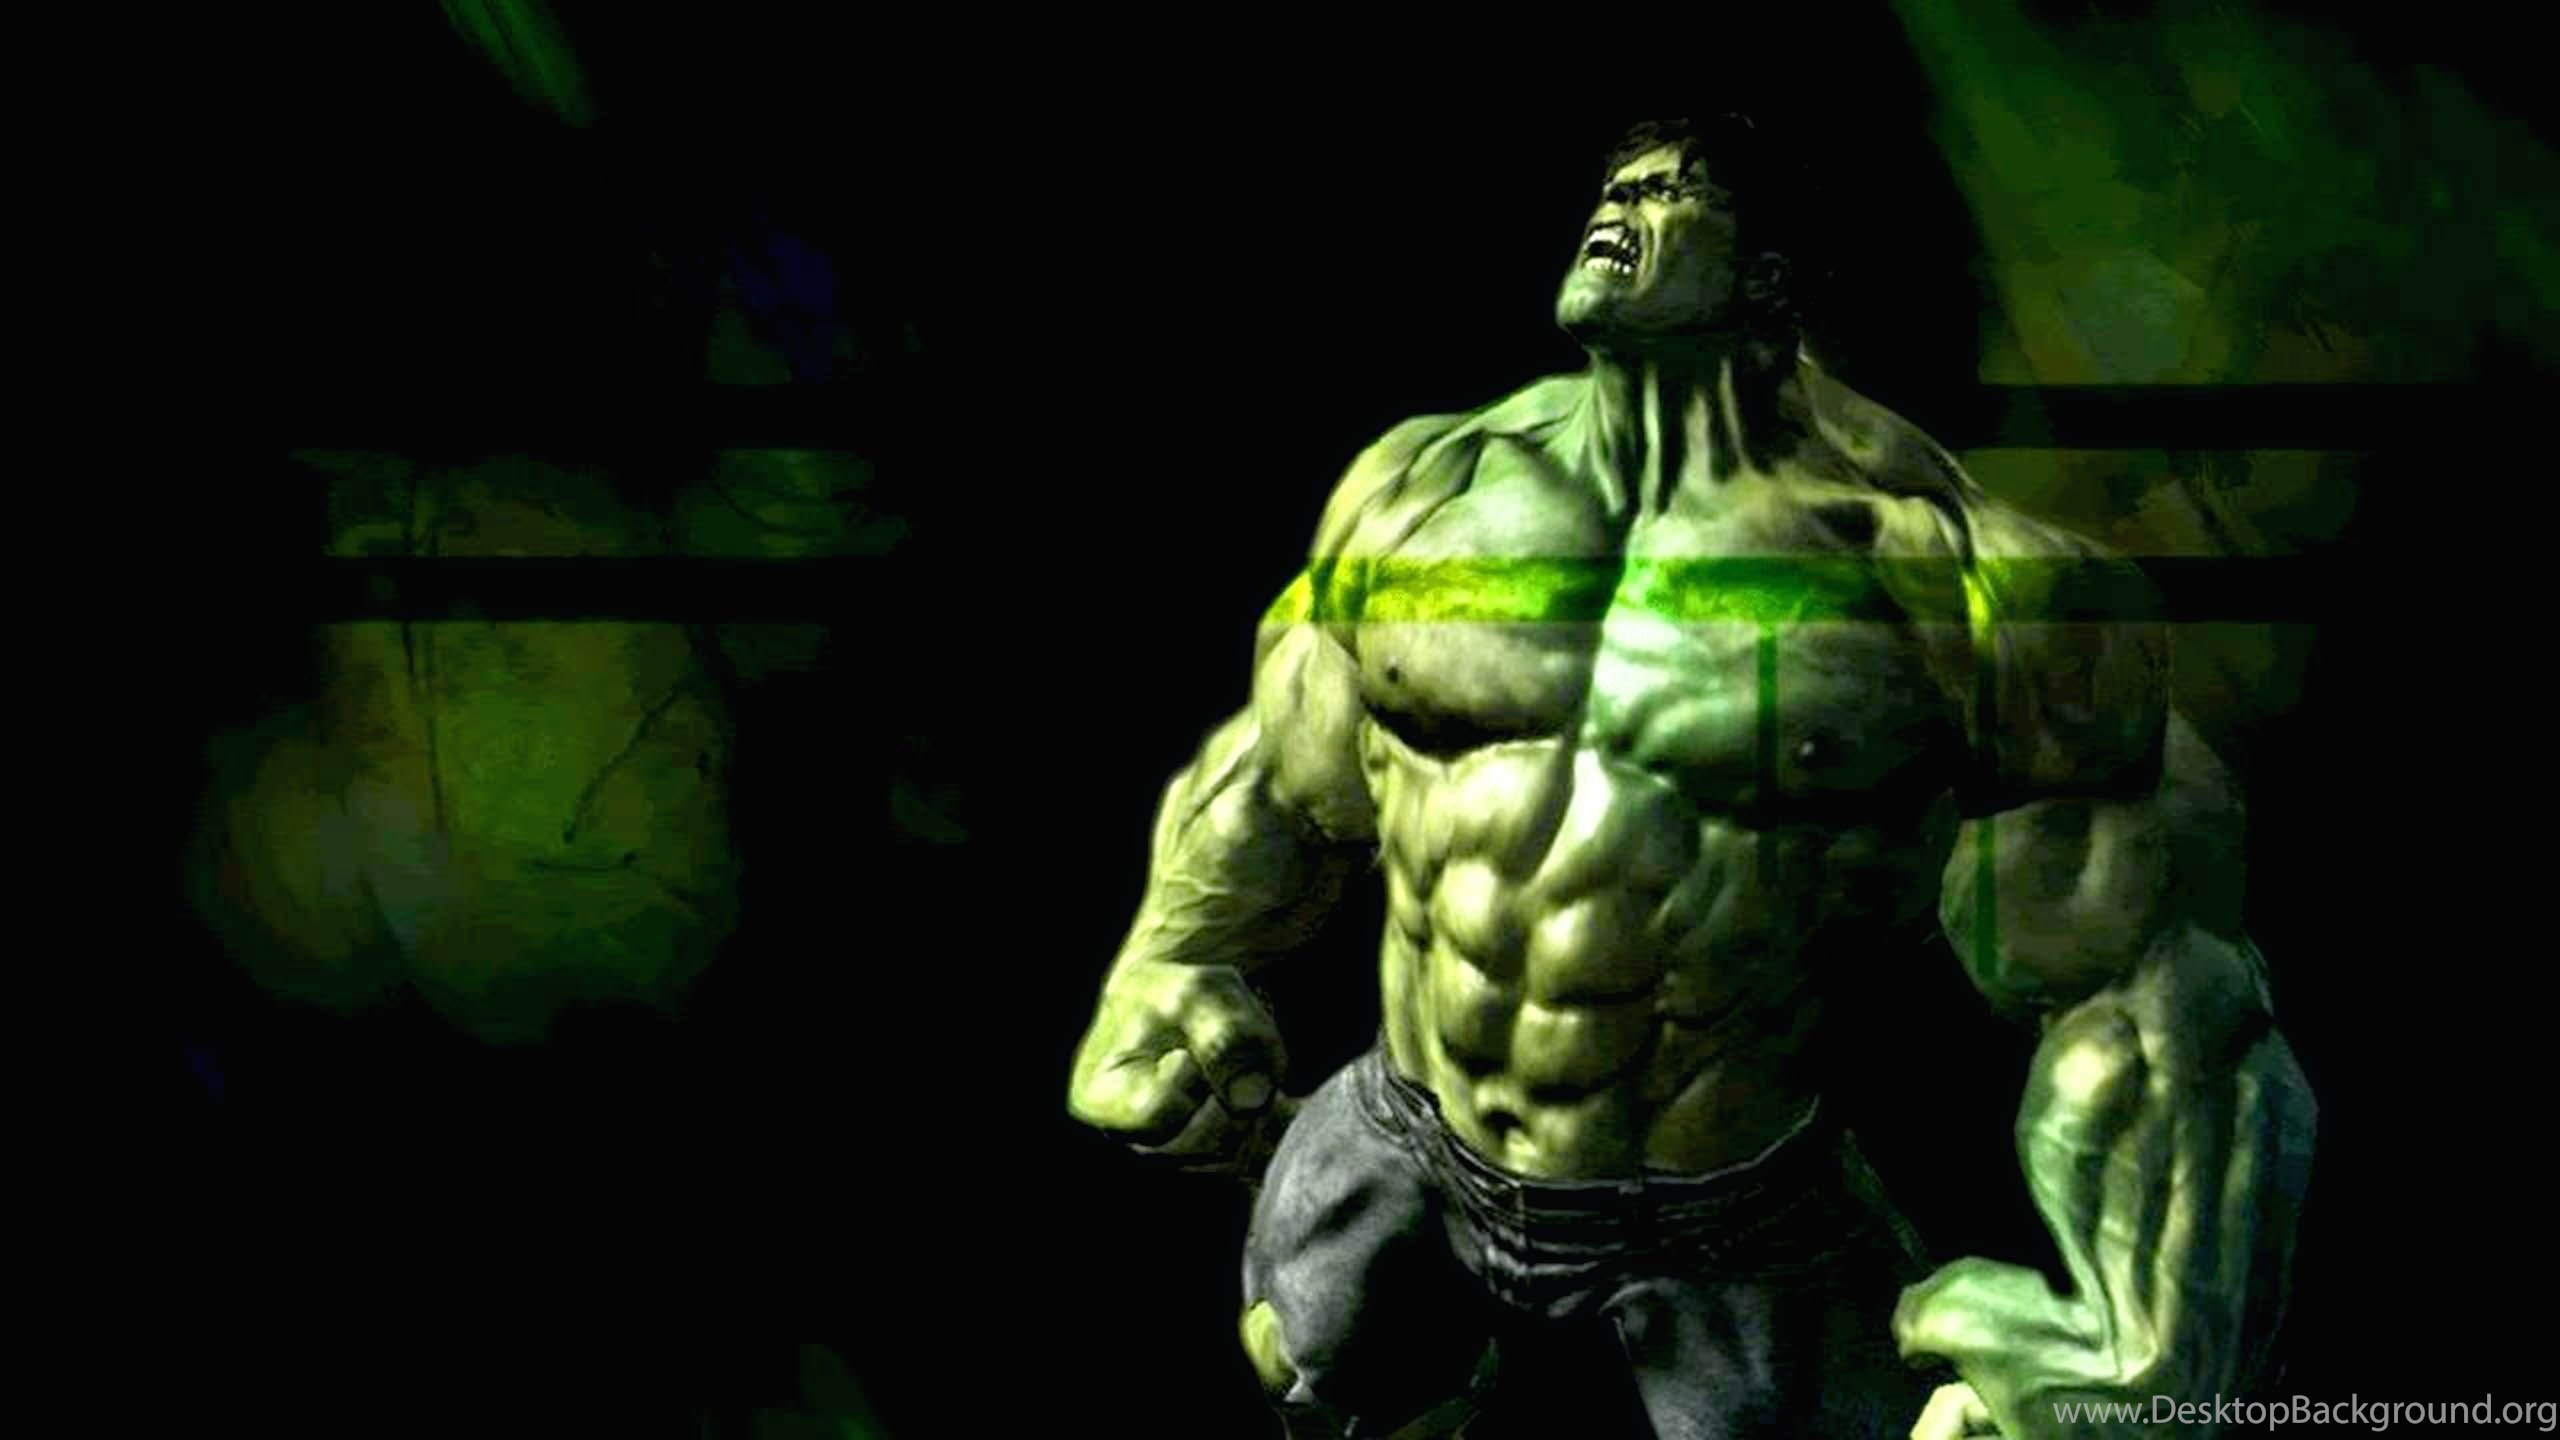 hulk d wallpaper wallpapers download free hulk wallpapers download